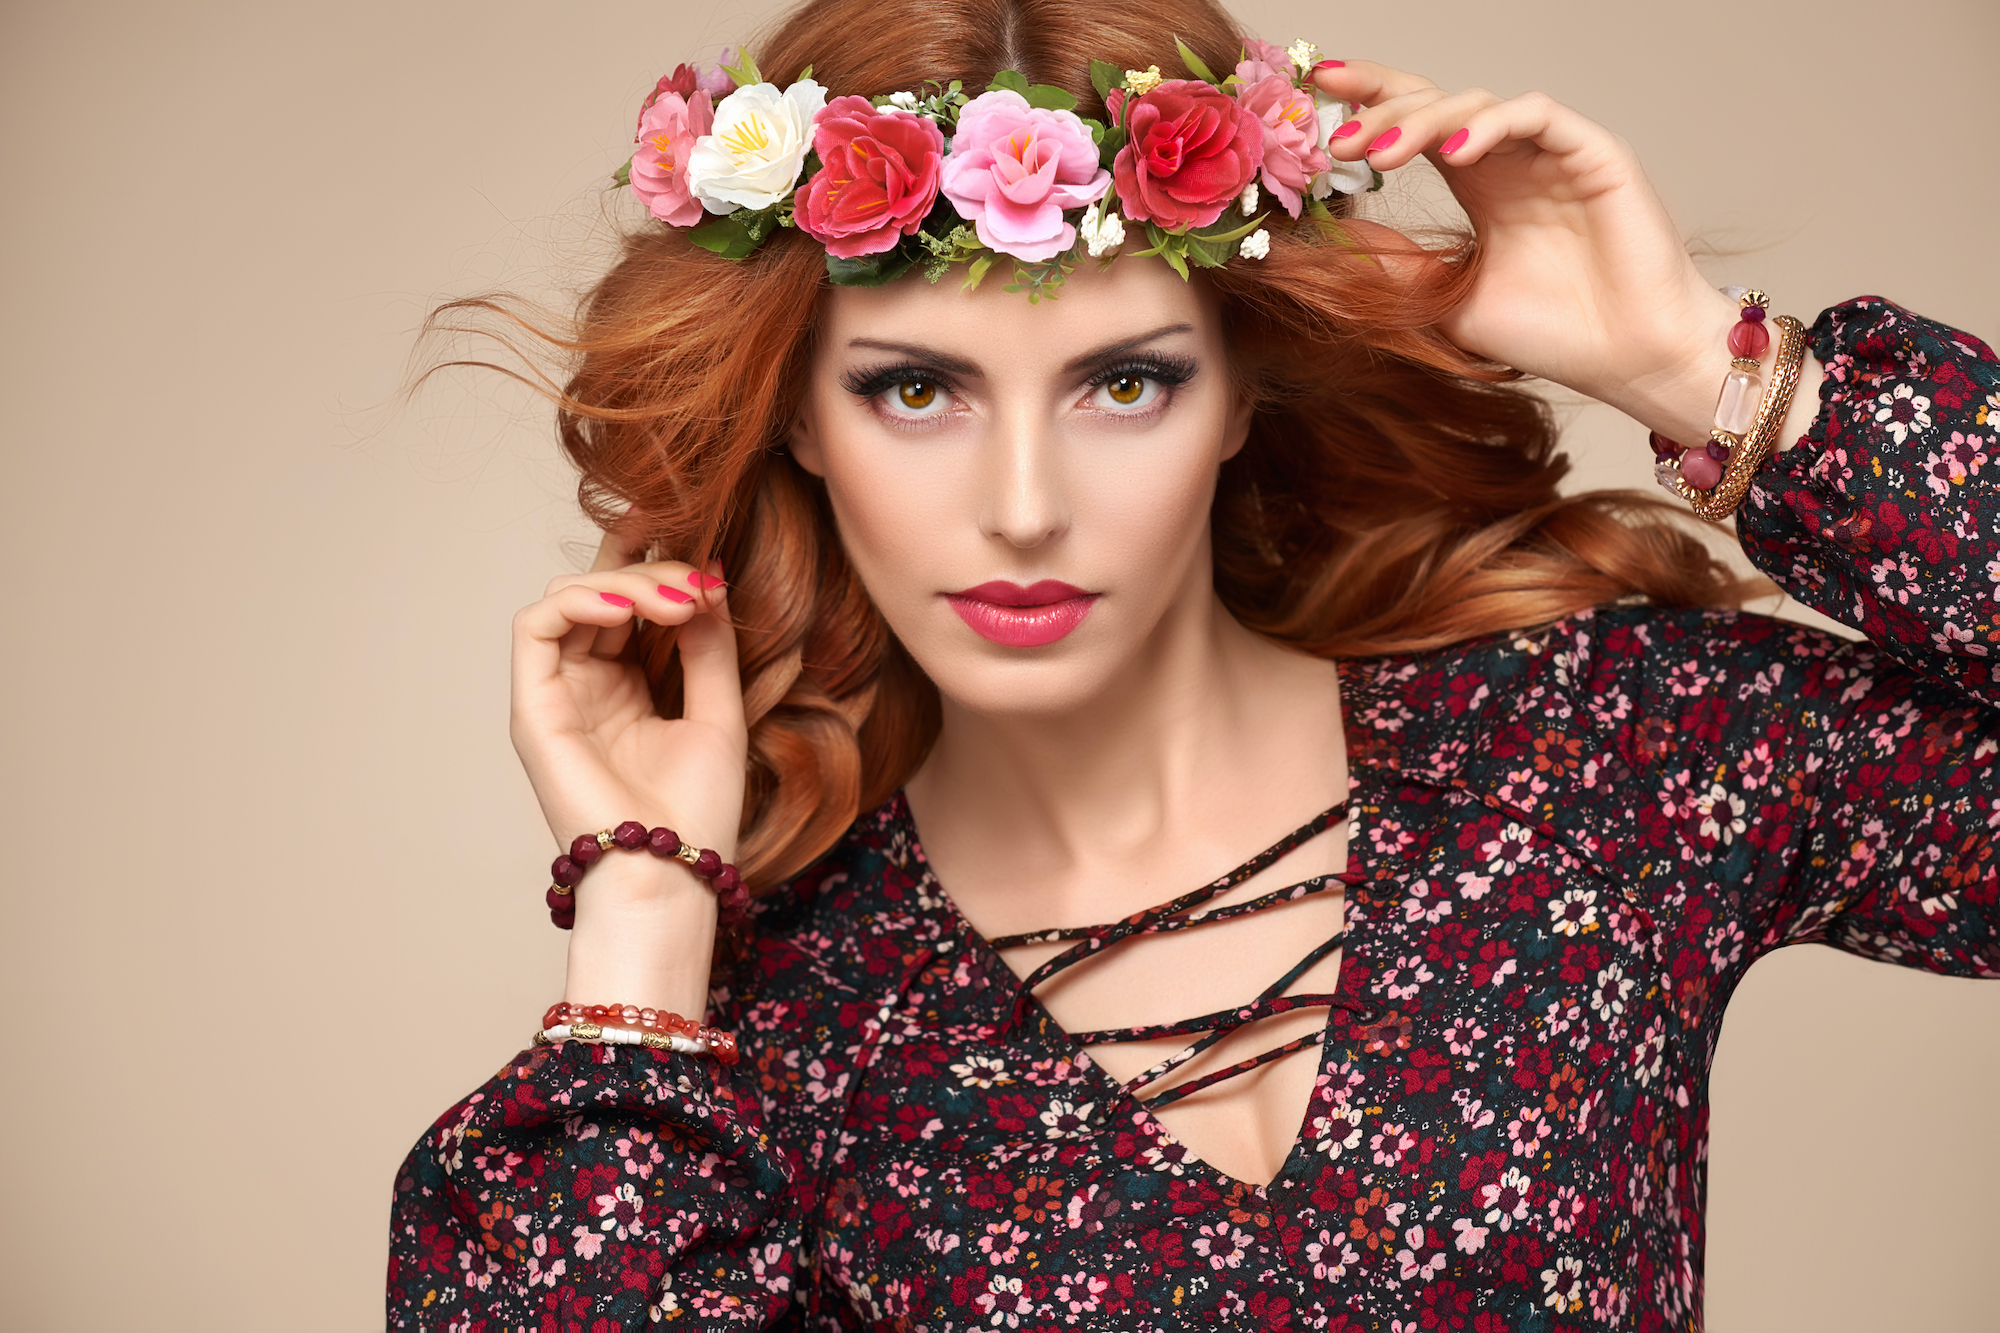 Autumn Fall Fashion. Redhead Woman Portrait.Makeup